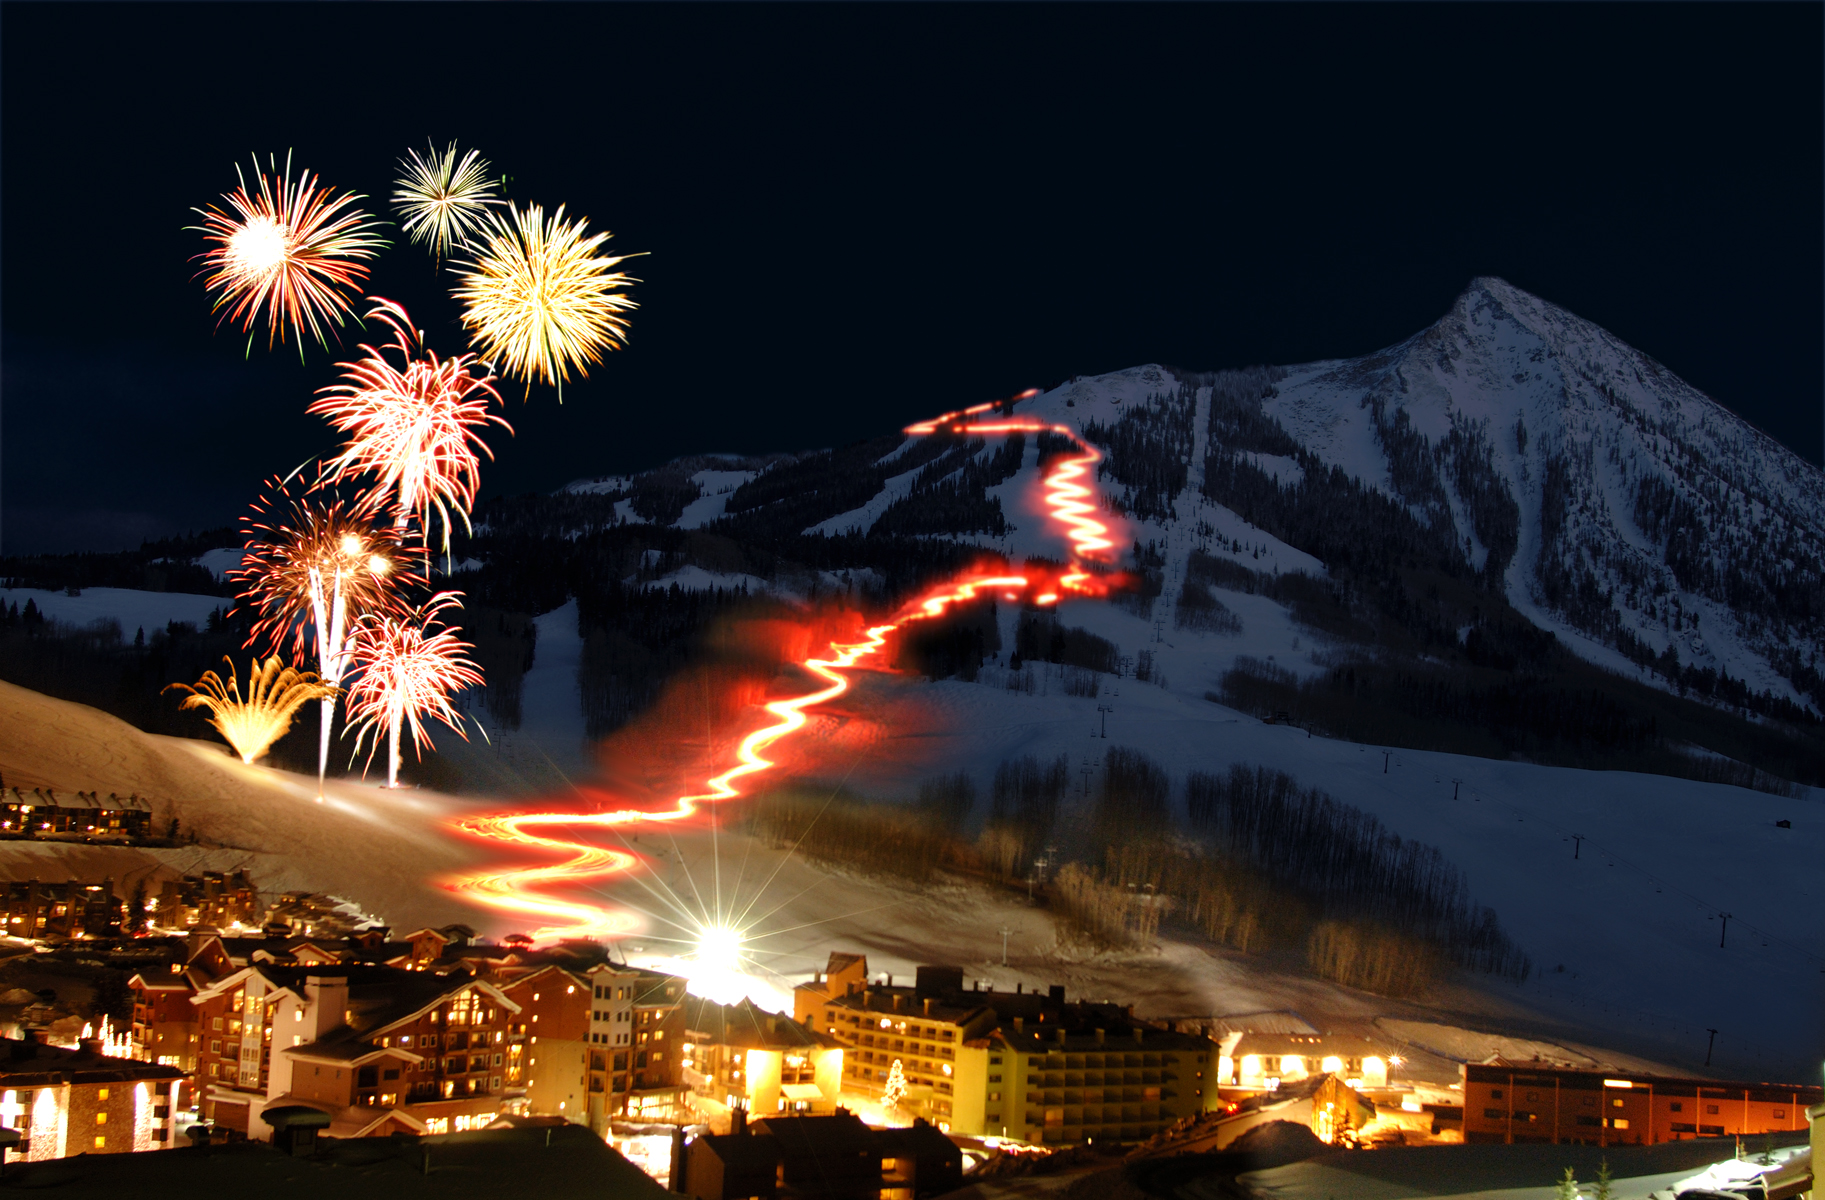 Torchlight parade and fireworks at Crested Butte Mountain Resort. Save up to $300 when you fly directly into Gunnison regional airport (photo supplied by CBMR)